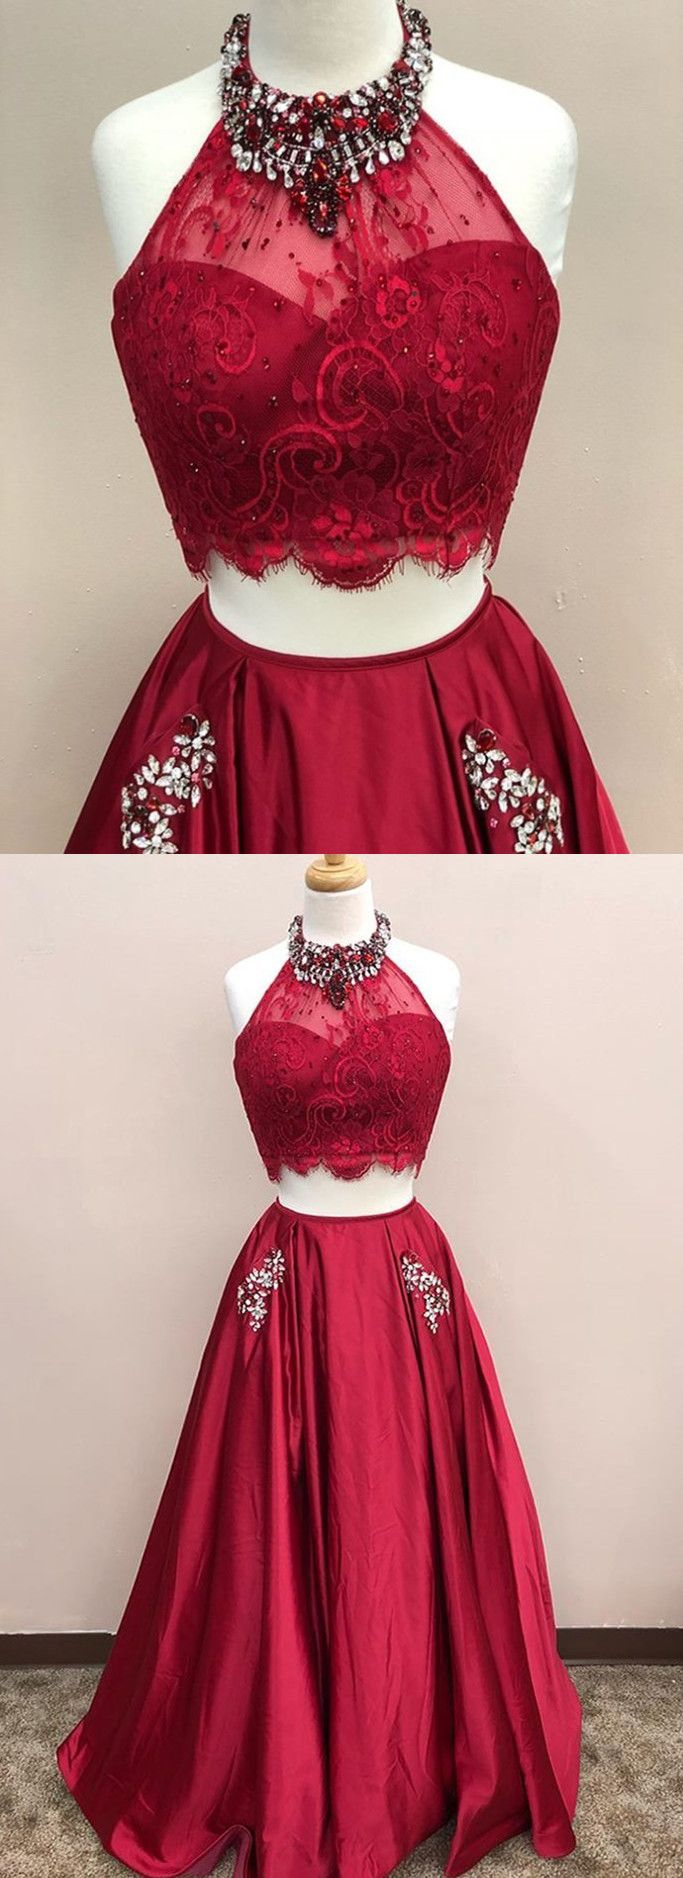 Elegant formal pieces prom party dresses simple fashion evening